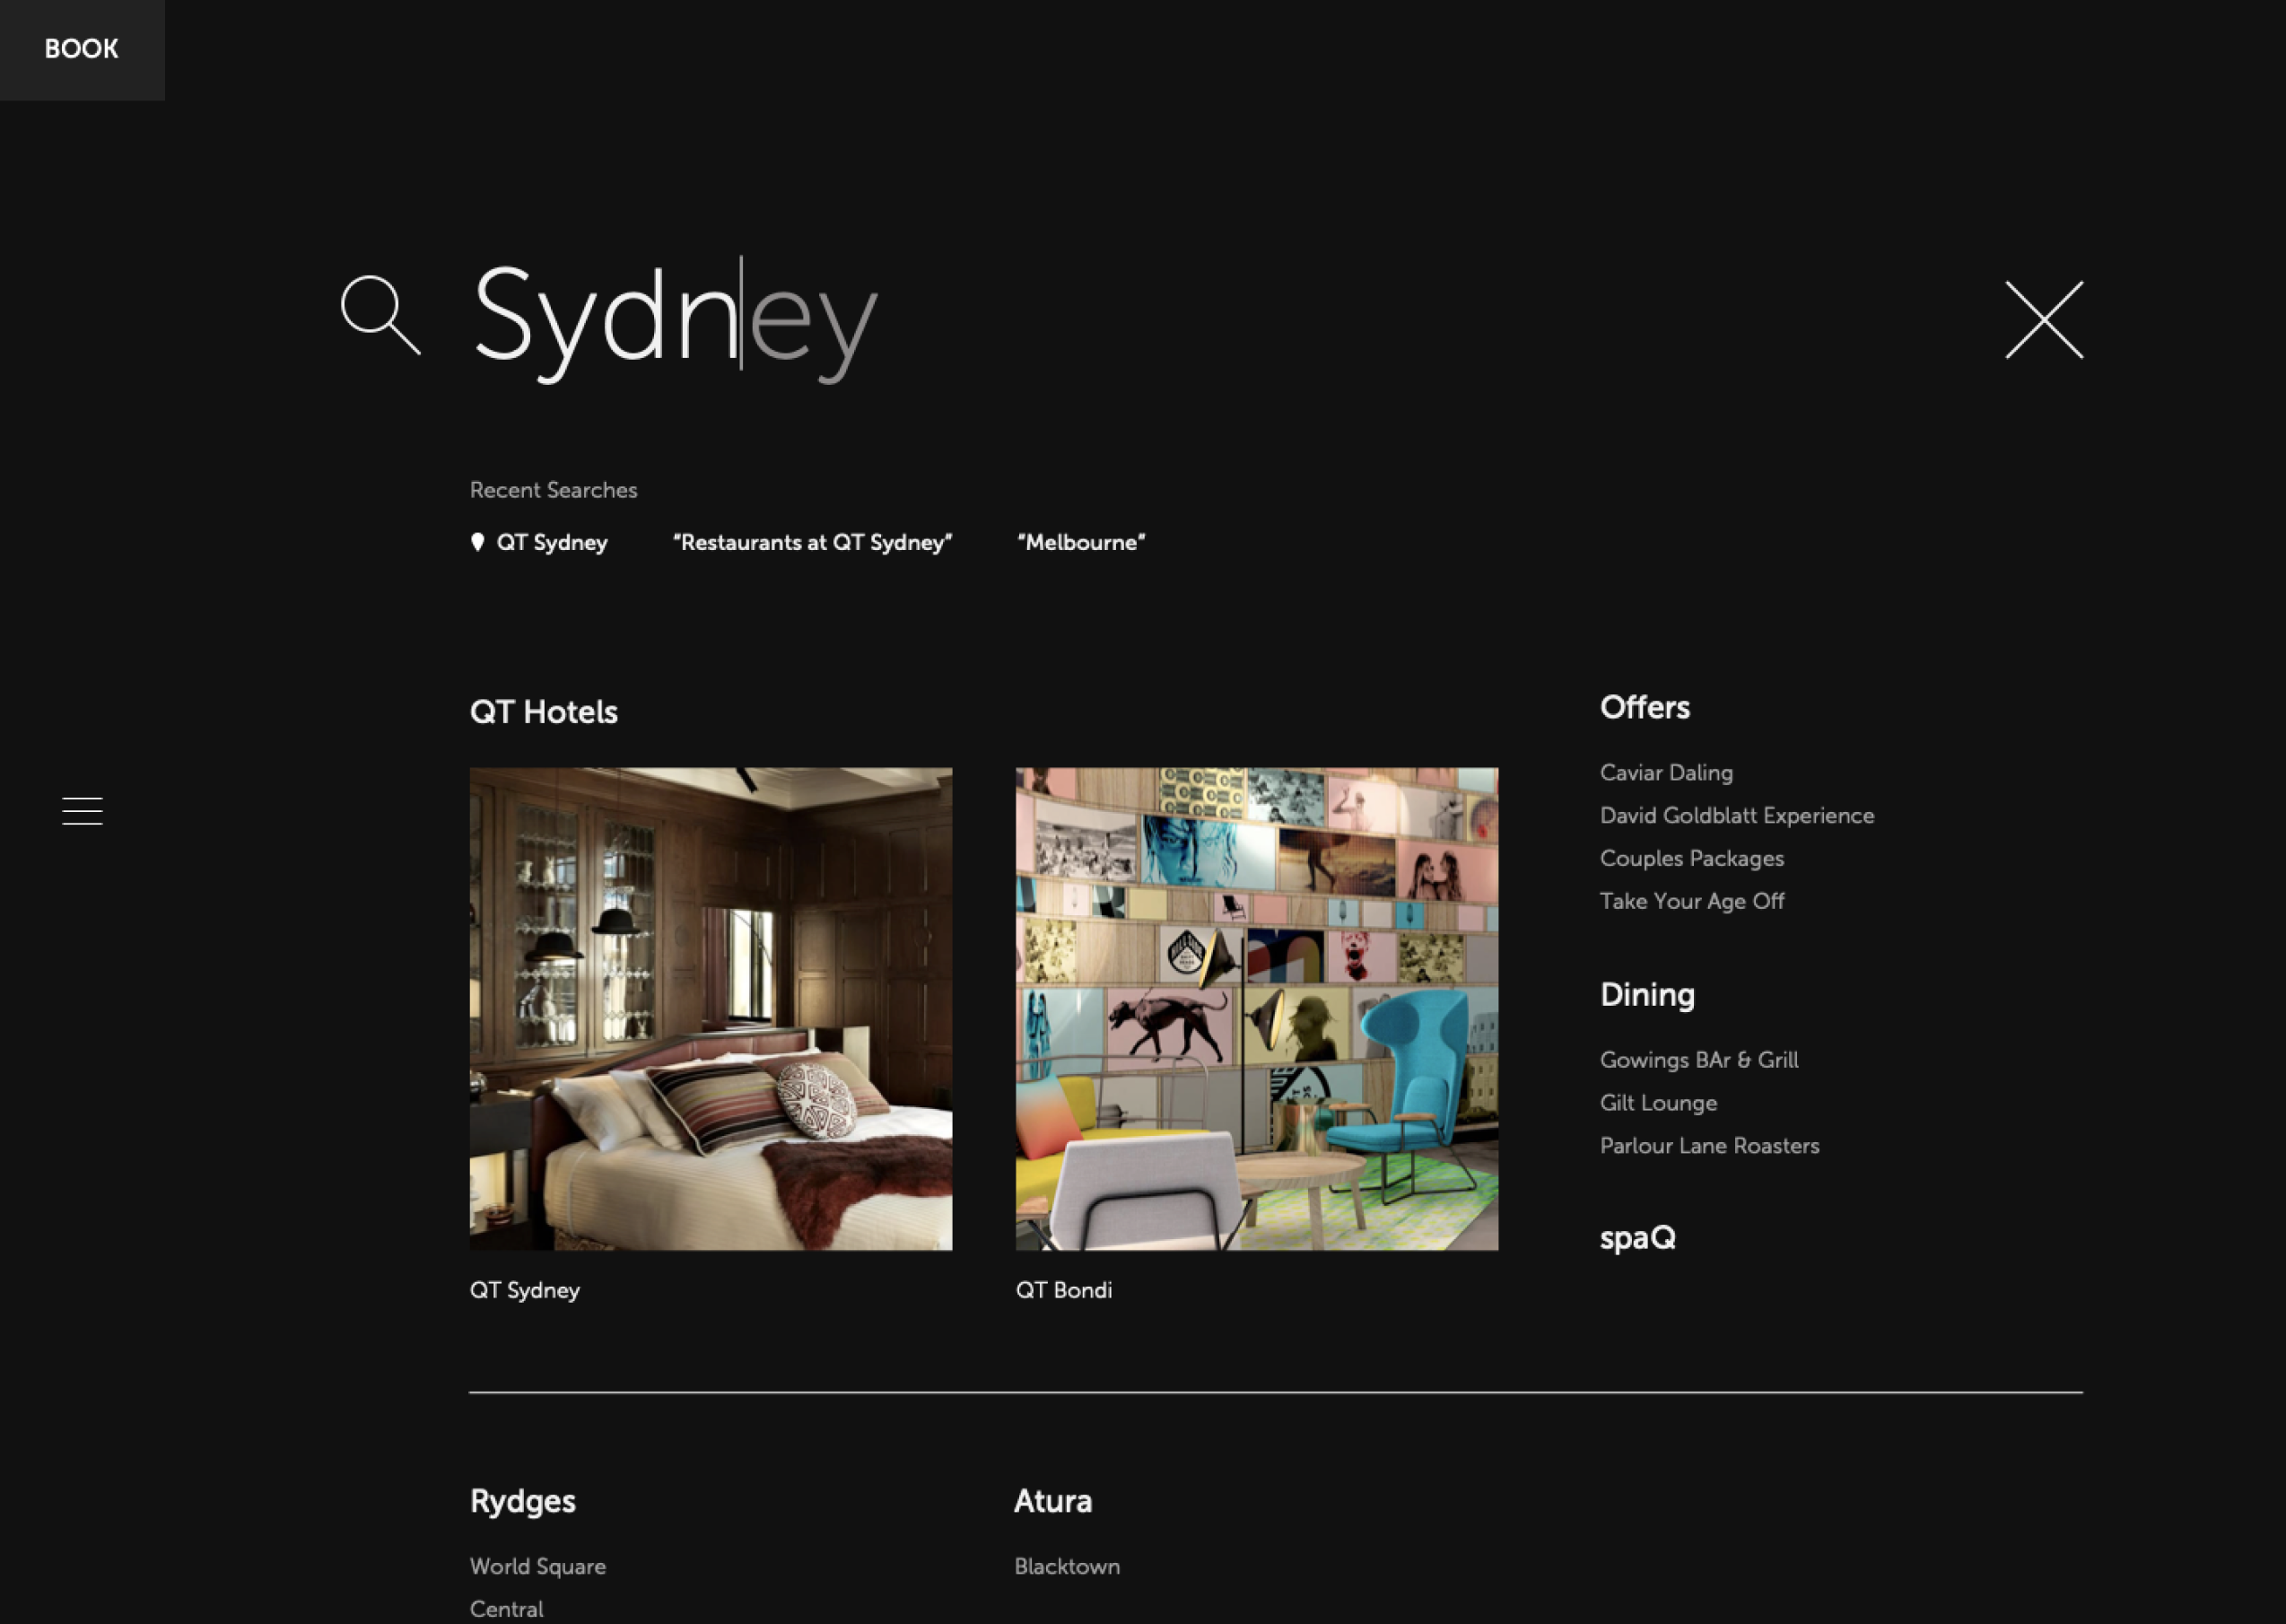 QT hotel search experience, showcasing large imagery and key information